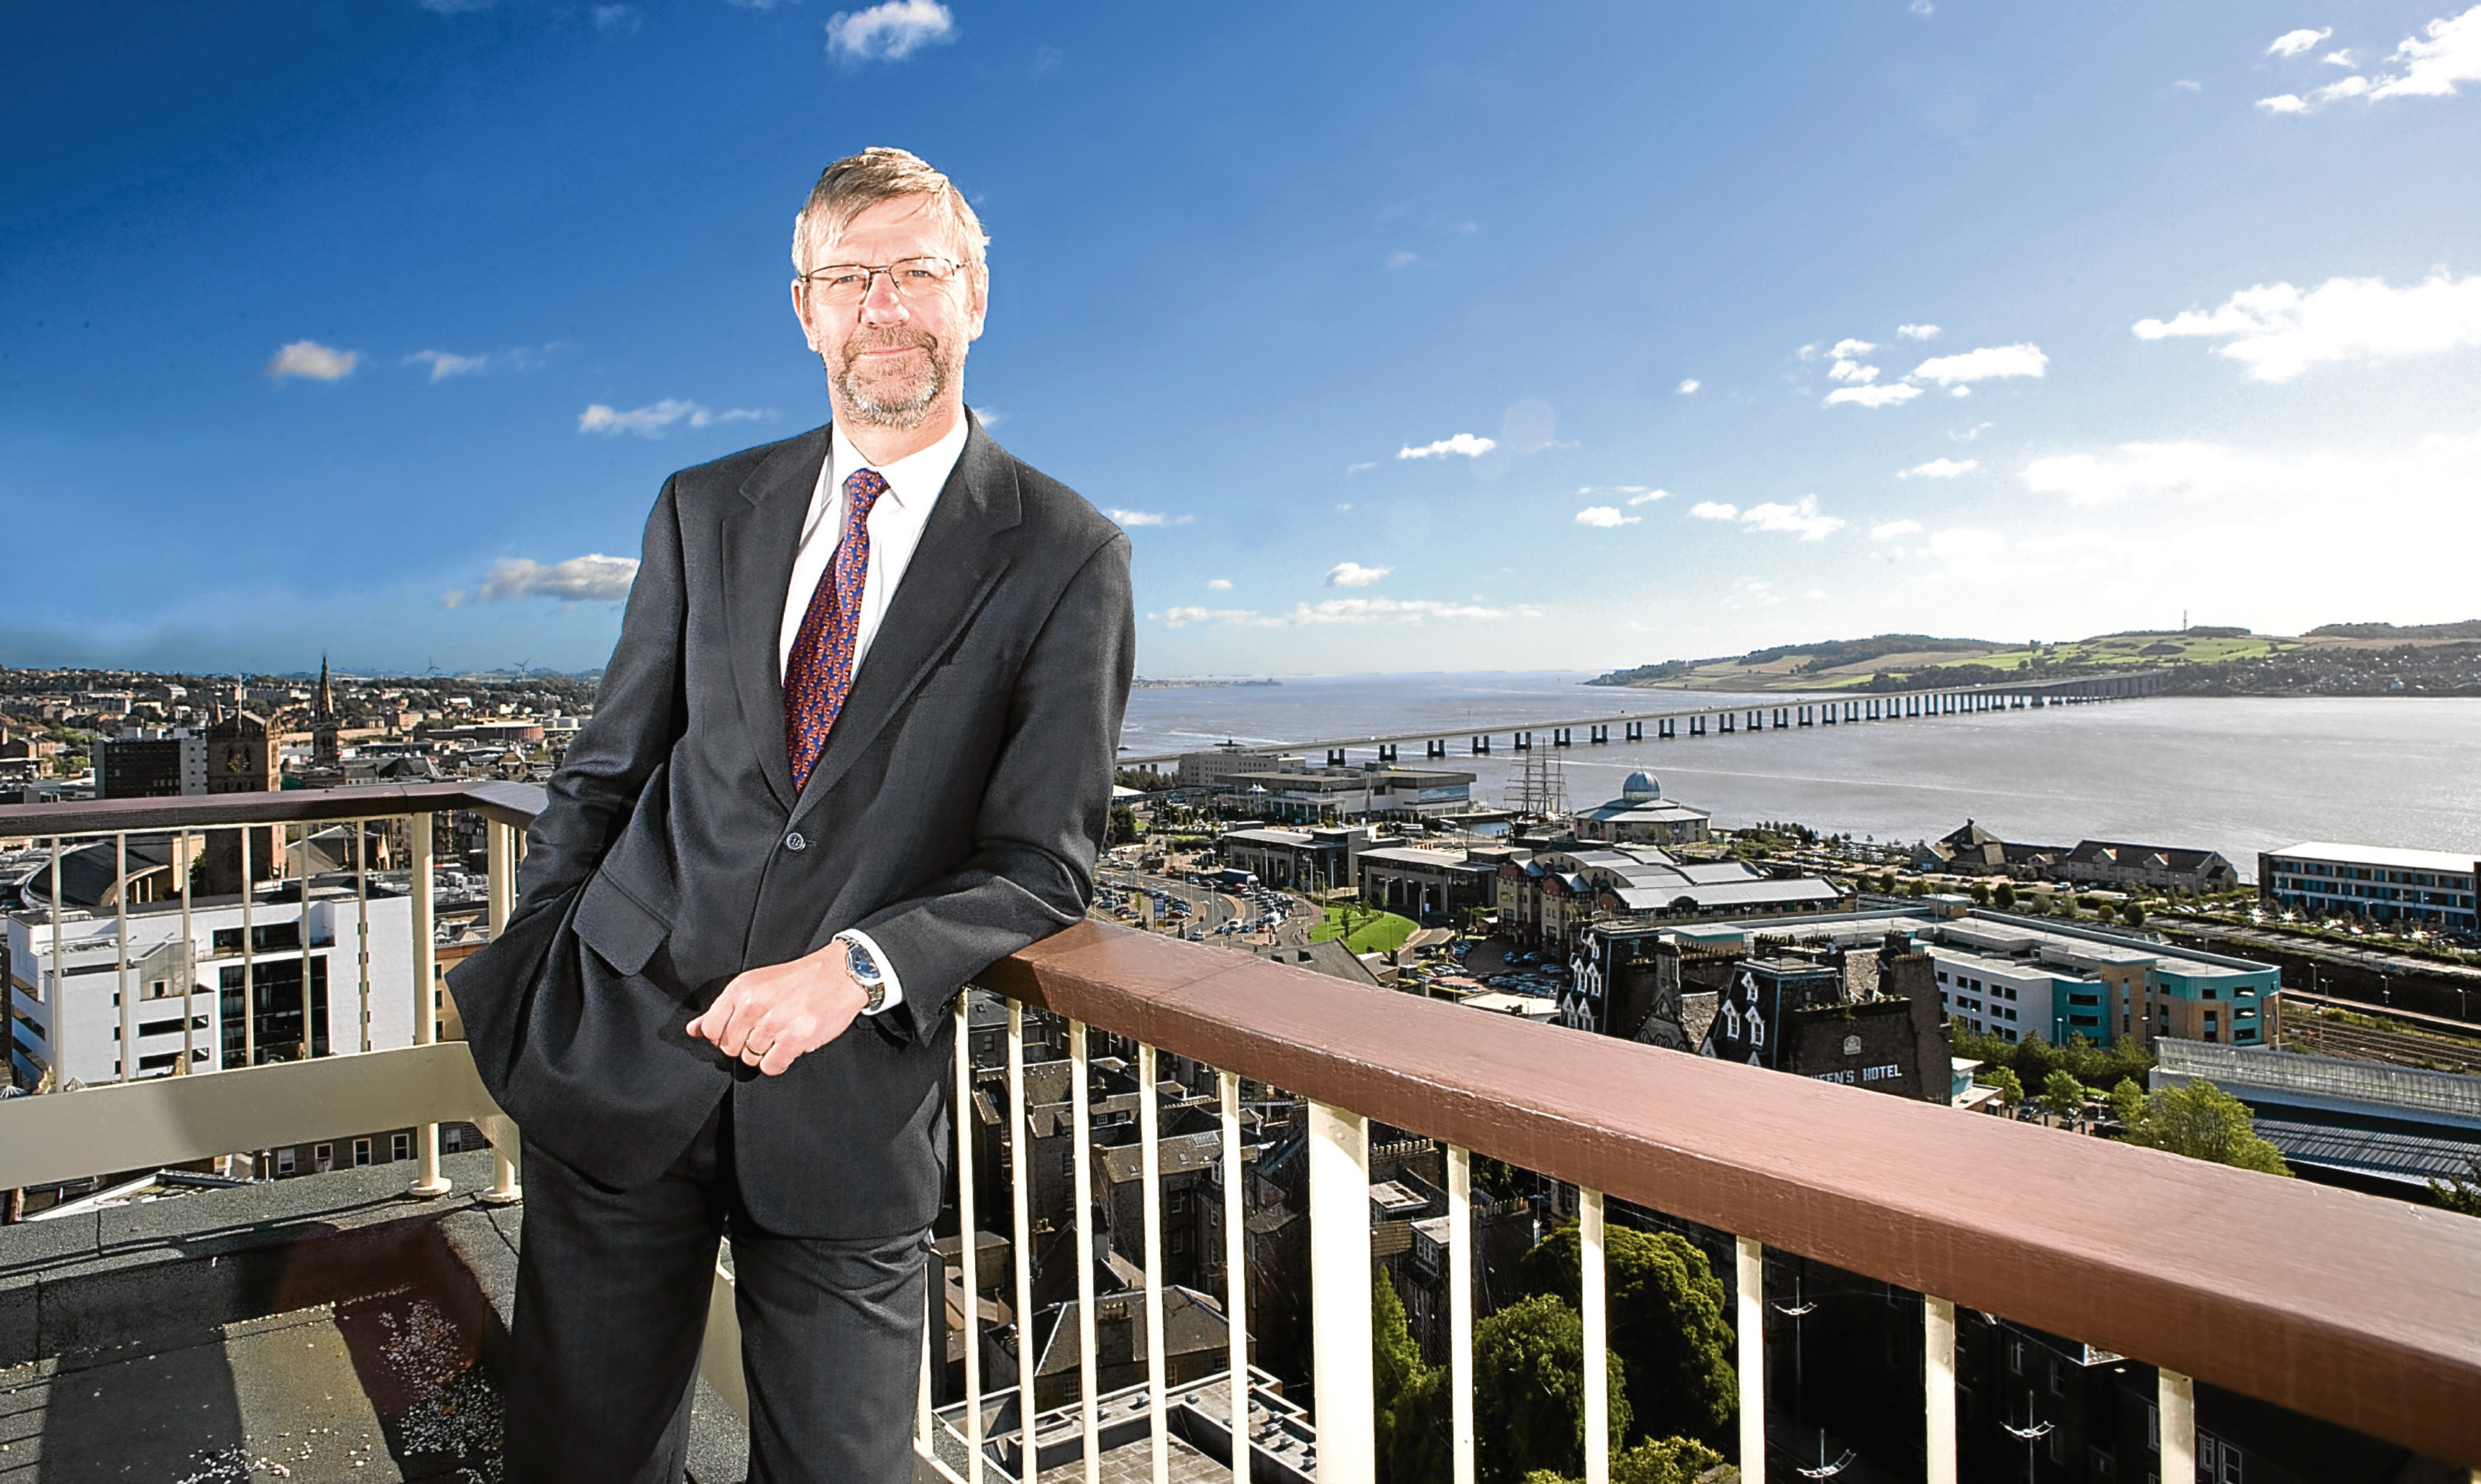 Professor Sir Pete Downes, Principal and Vice-Chancellor of the University of Dundee